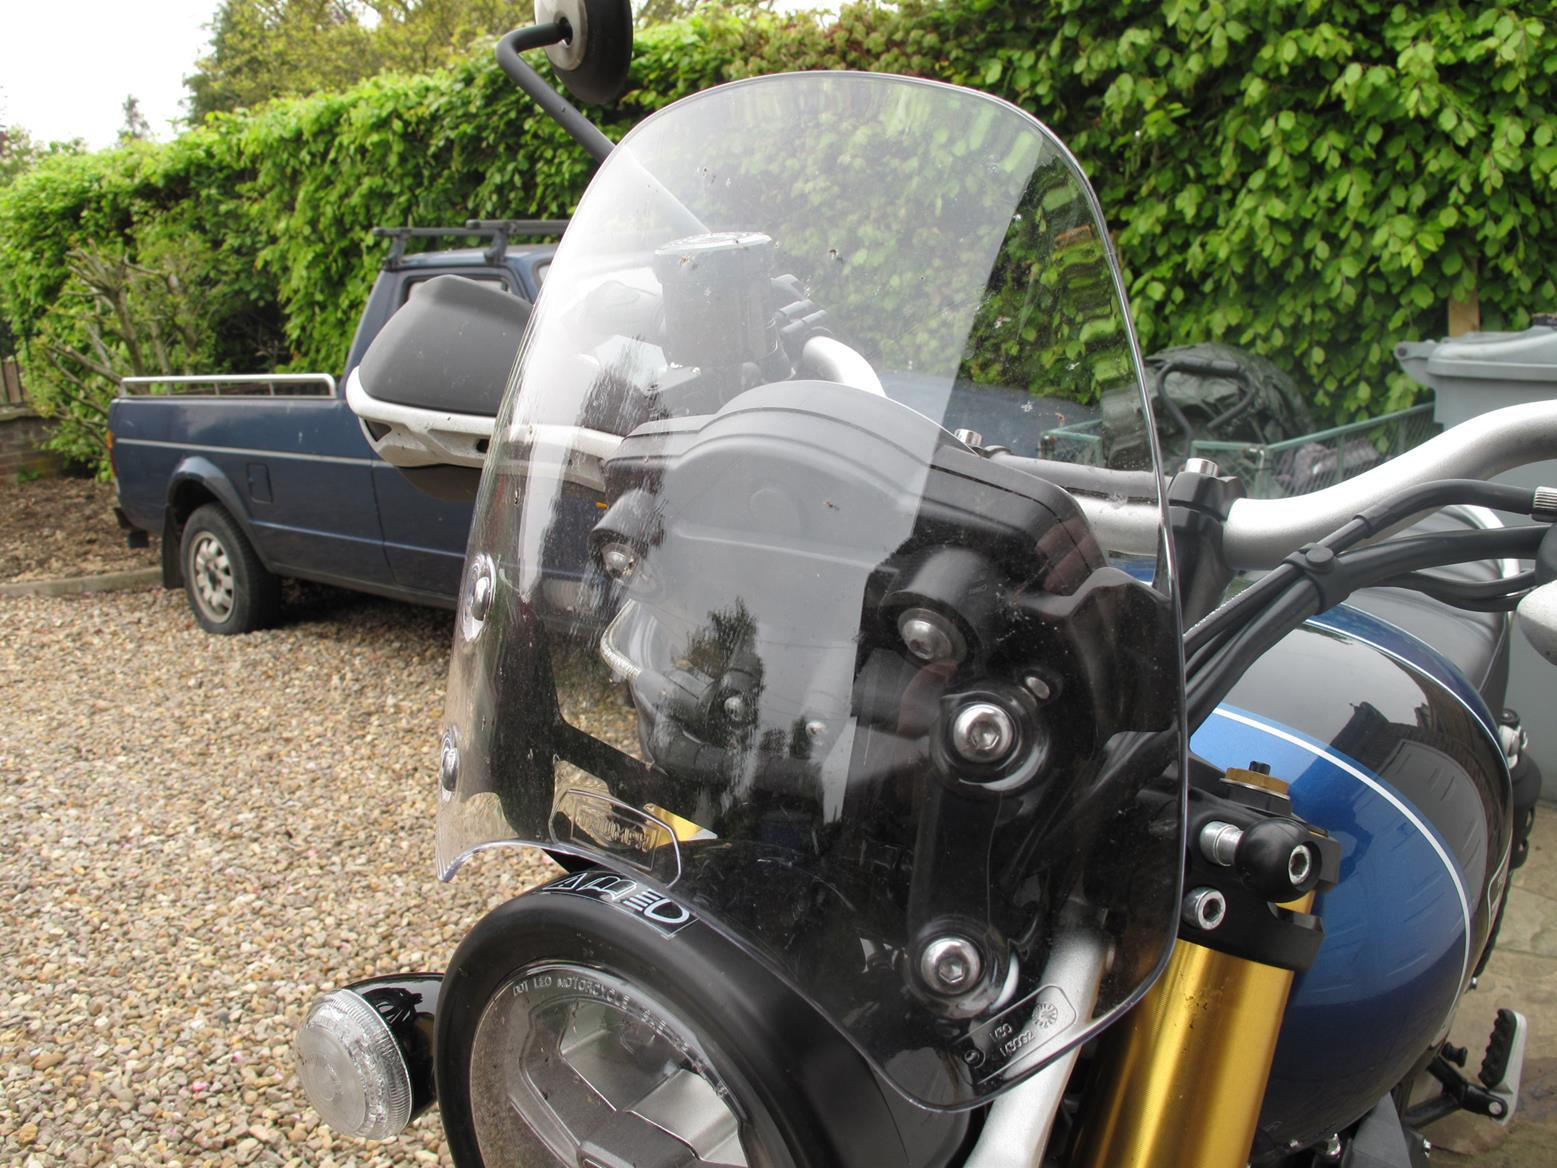 Triumph Scrambler 1200 XE screen